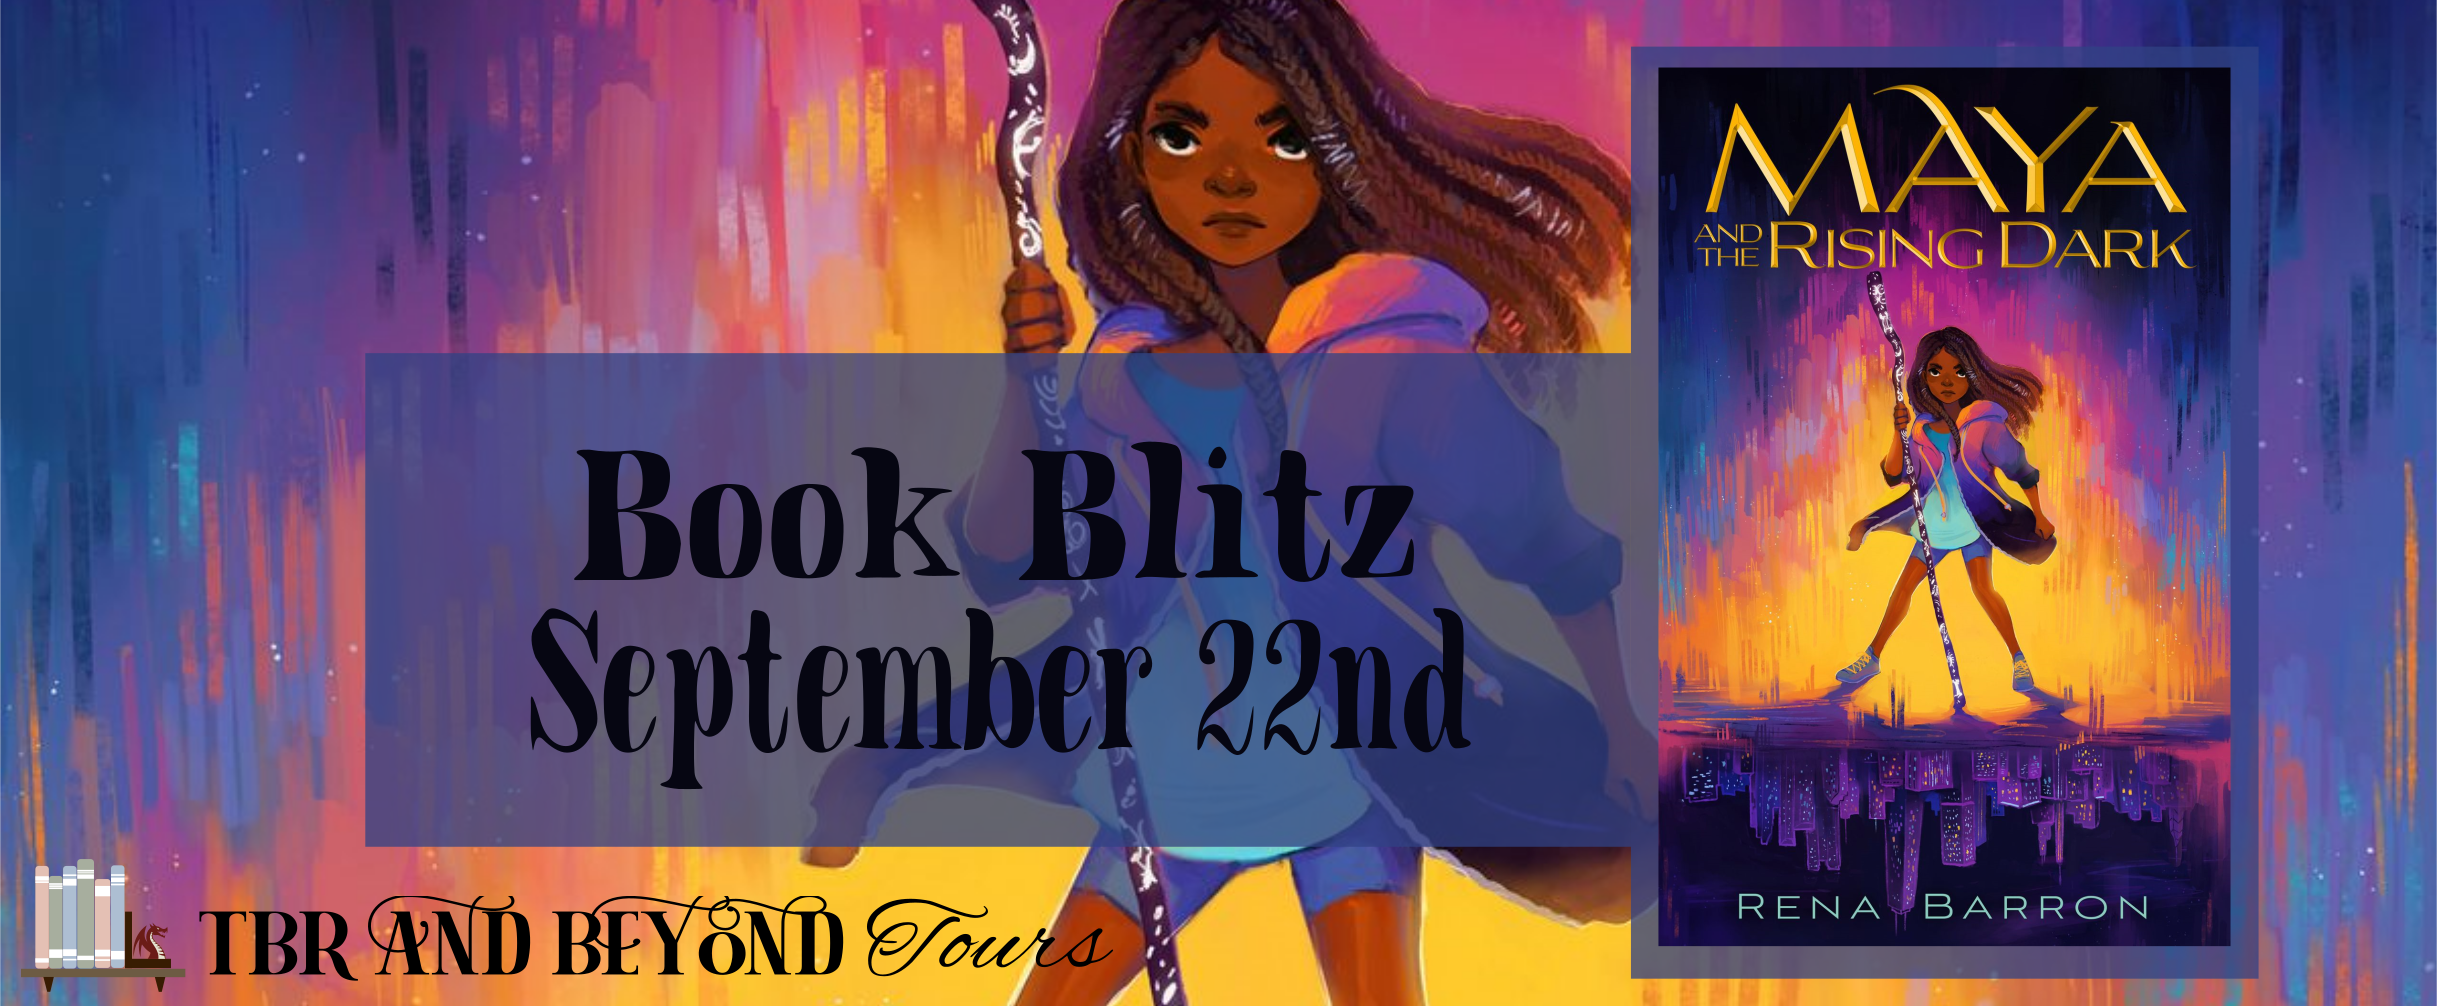 Blog Blitz: Maya and the Rising Dark by Rena Barron